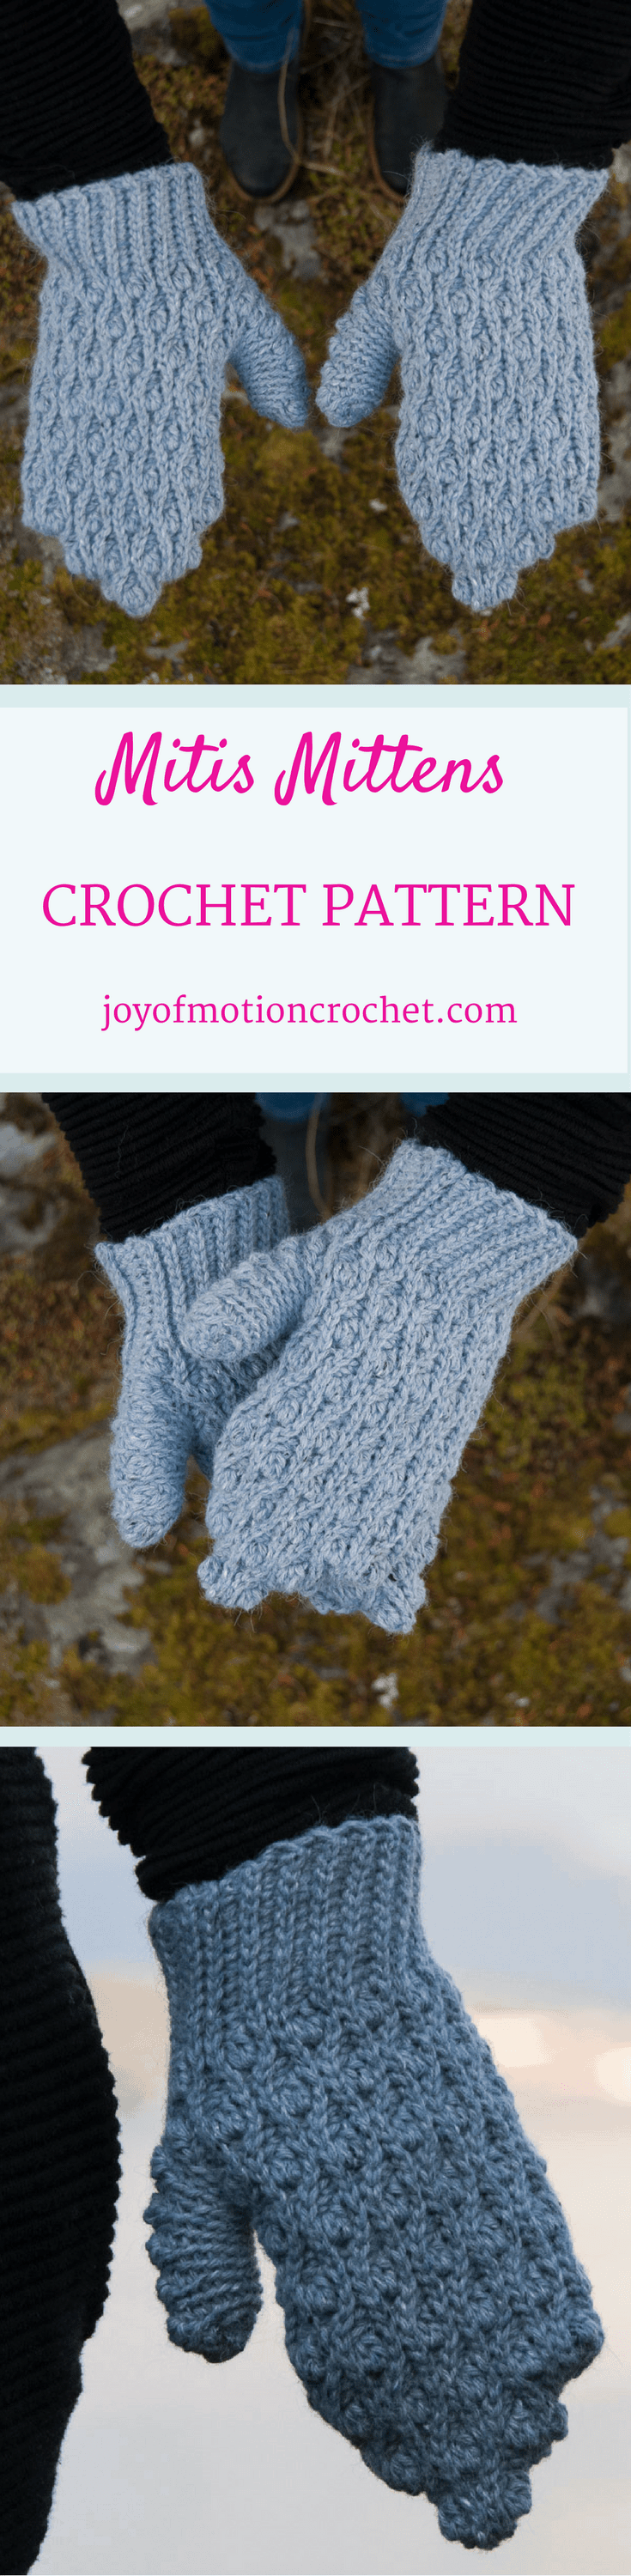 Mitis Mittens Crochet Pattern. Intermediate crochet mittens. Bulky weight crochet mittens. Crochet gloves. How to crochet mittens. #crochetpattern #crochetmittens #crochetgloves #crochetpatternmittens #crochet